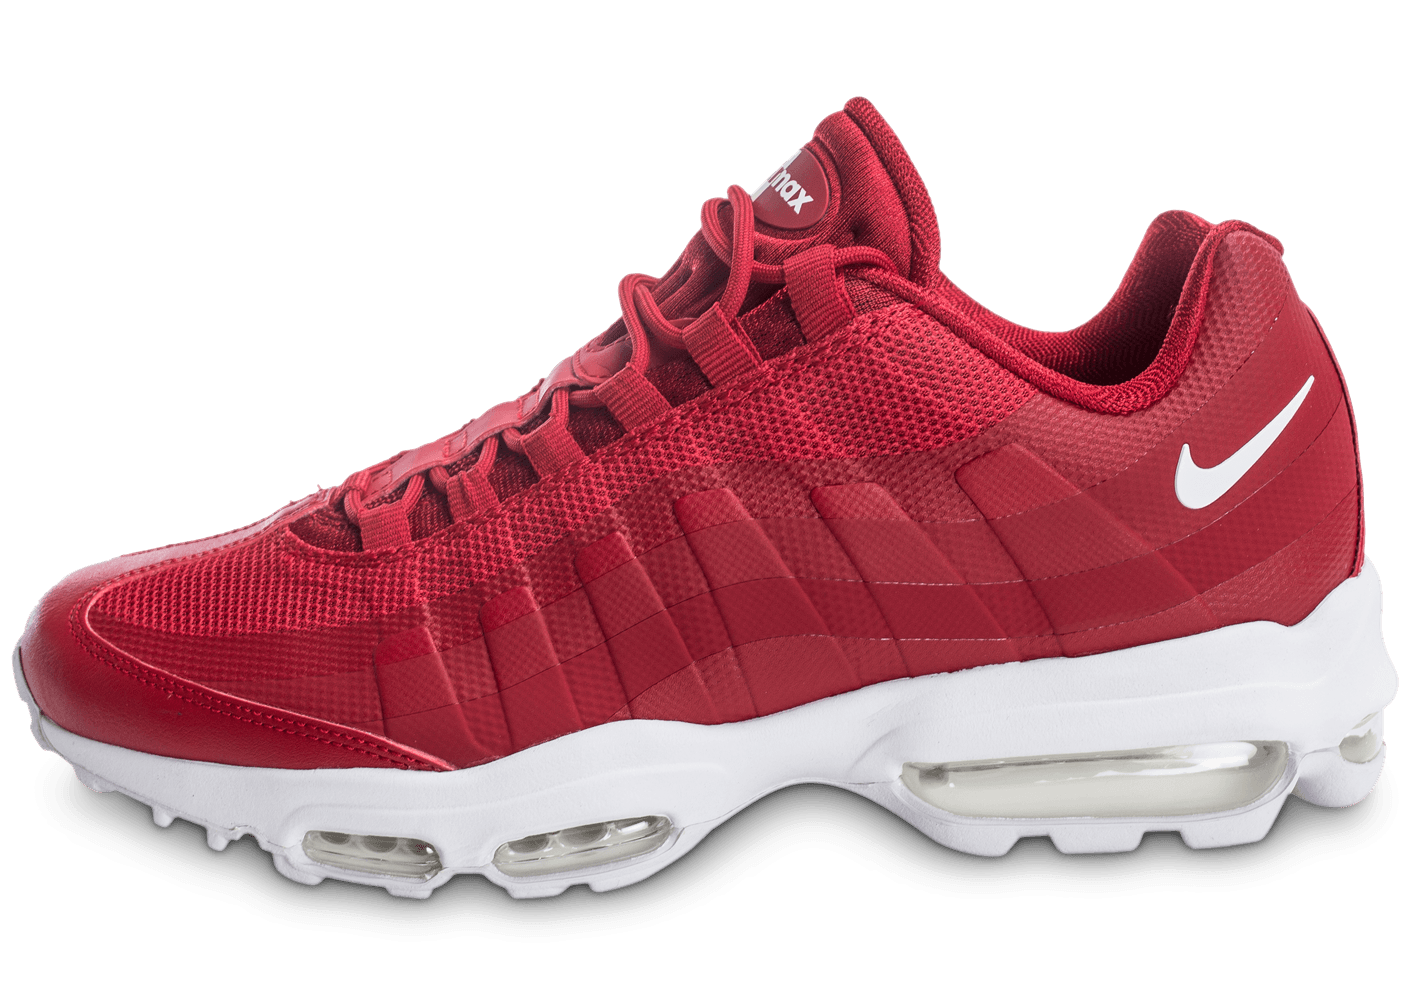 quality design 639b7 244e6 air max 95 rouge femme